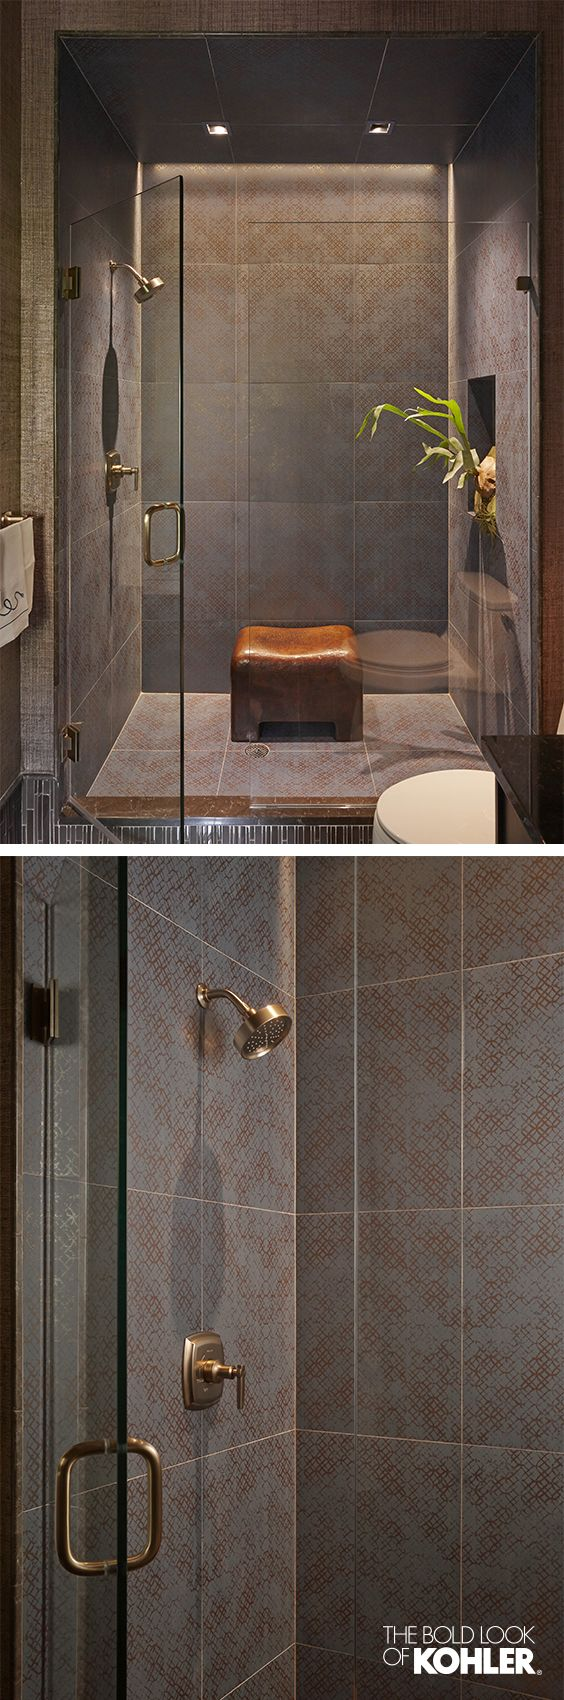 Guest bath interior design inspiration - a beautiful shower experience.